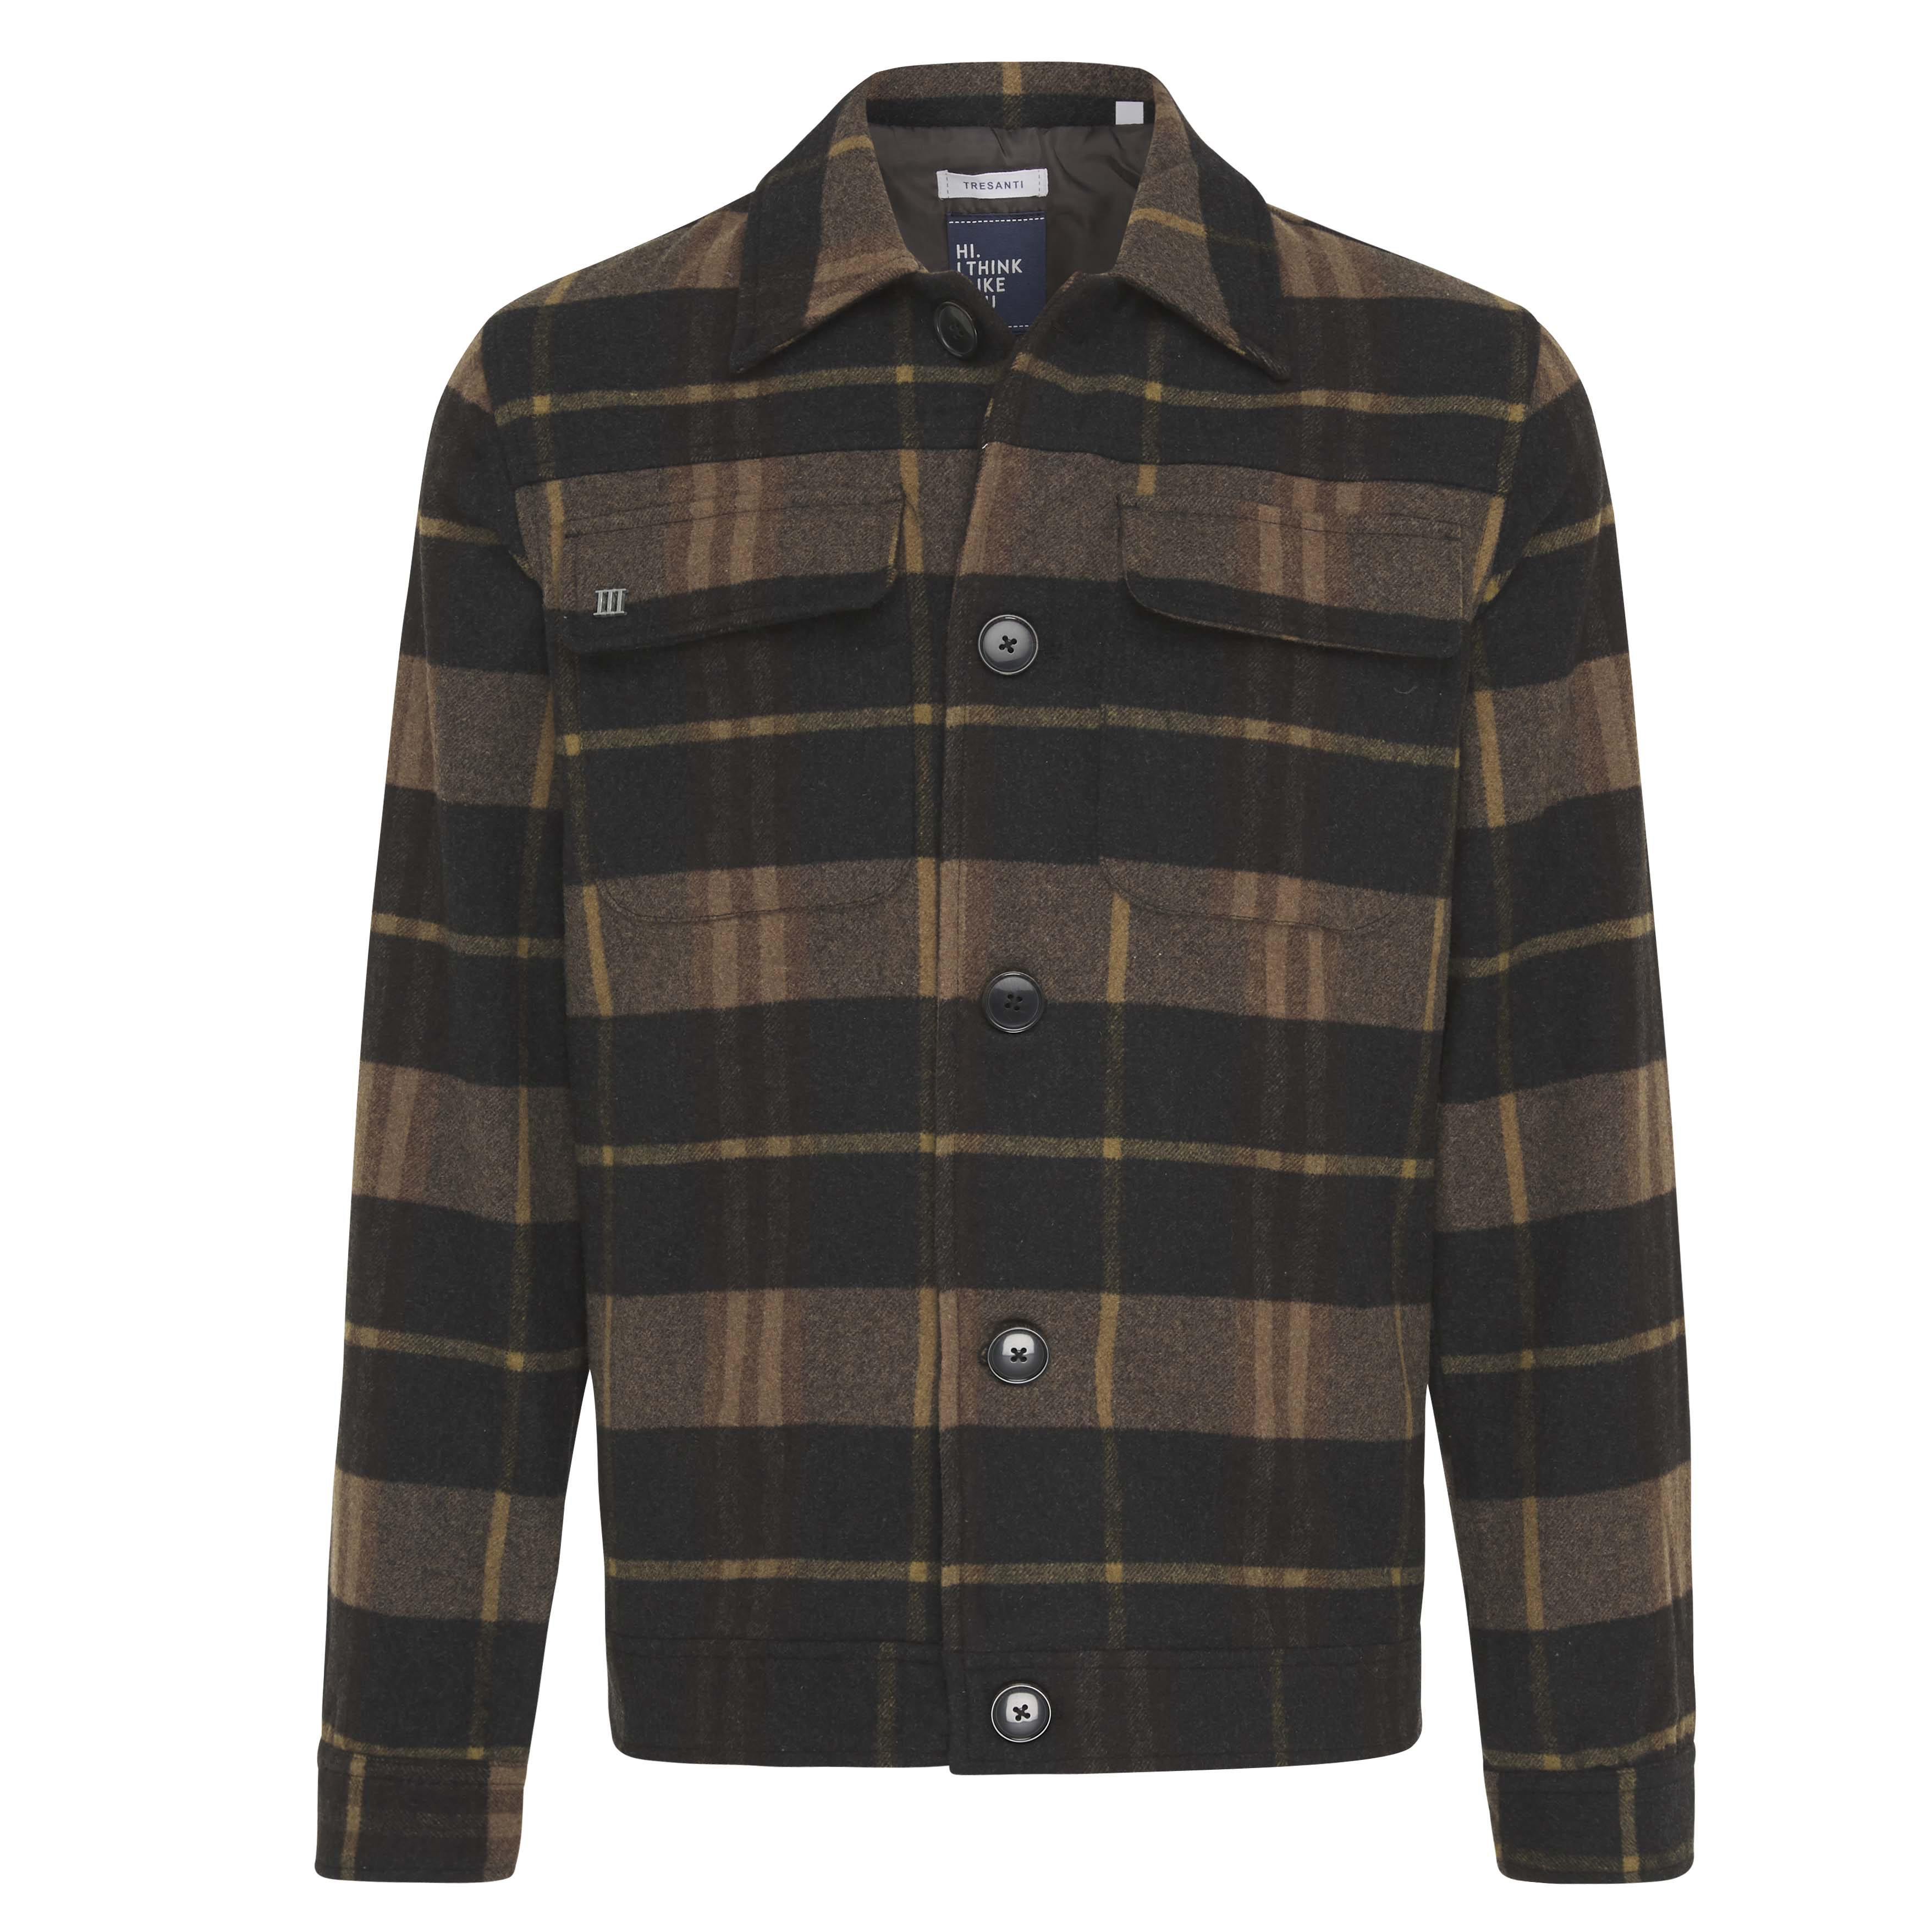 Jay | Jacket check wool blend brown